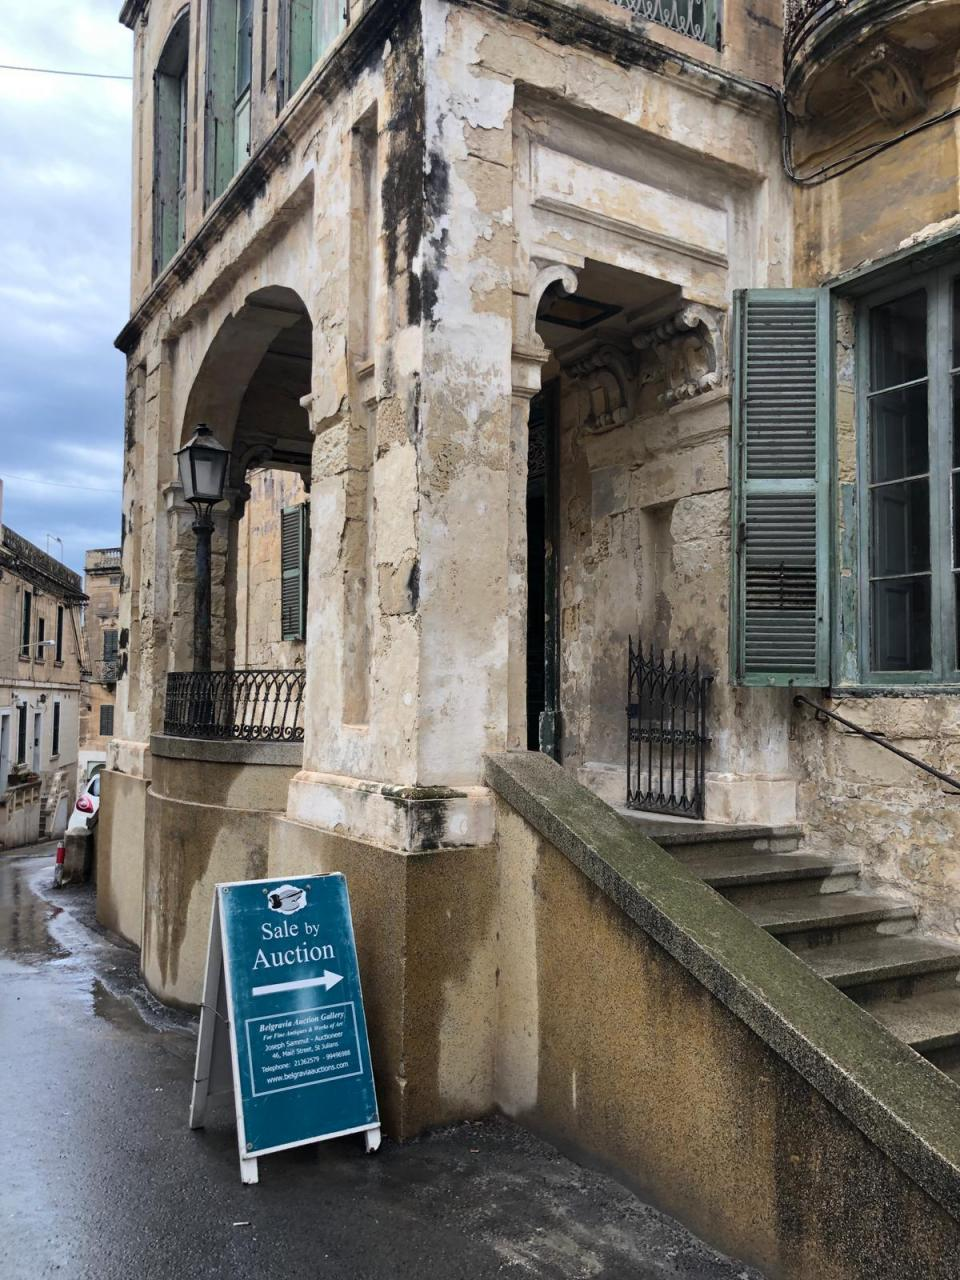 The Queen's former home in Malta is on sale - and so are its contents. Photo: Mario Cacciottolo